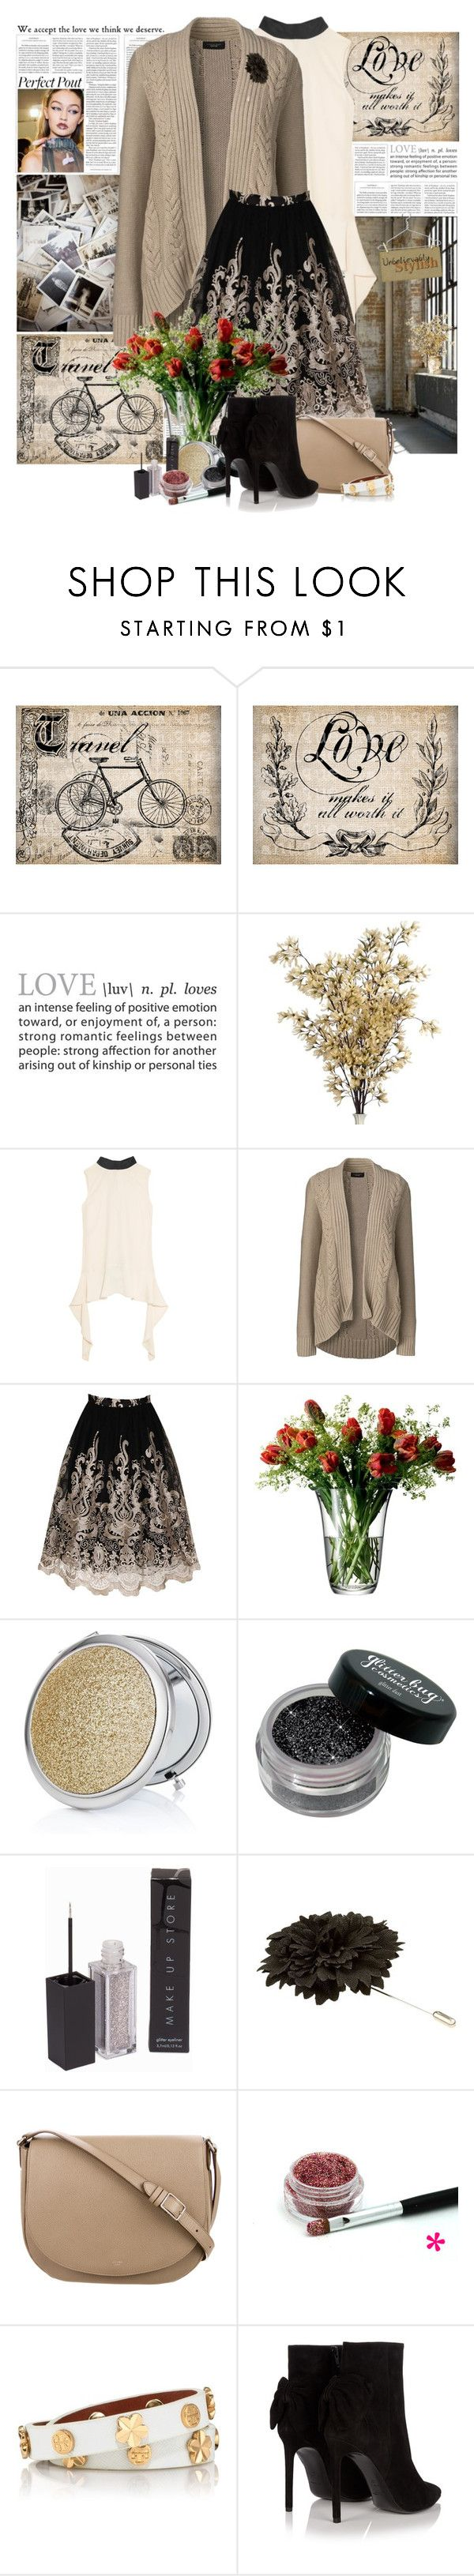 """Perfect Pout"" by summersunshinesk7 ❤ liked on Polyvore featuring Haute Hippie, Marni, Lands' End, Chi Chi, LSA International, MAKE UP STORE, Lanvin, Wallflower, CÉLINE and Tory Burch"